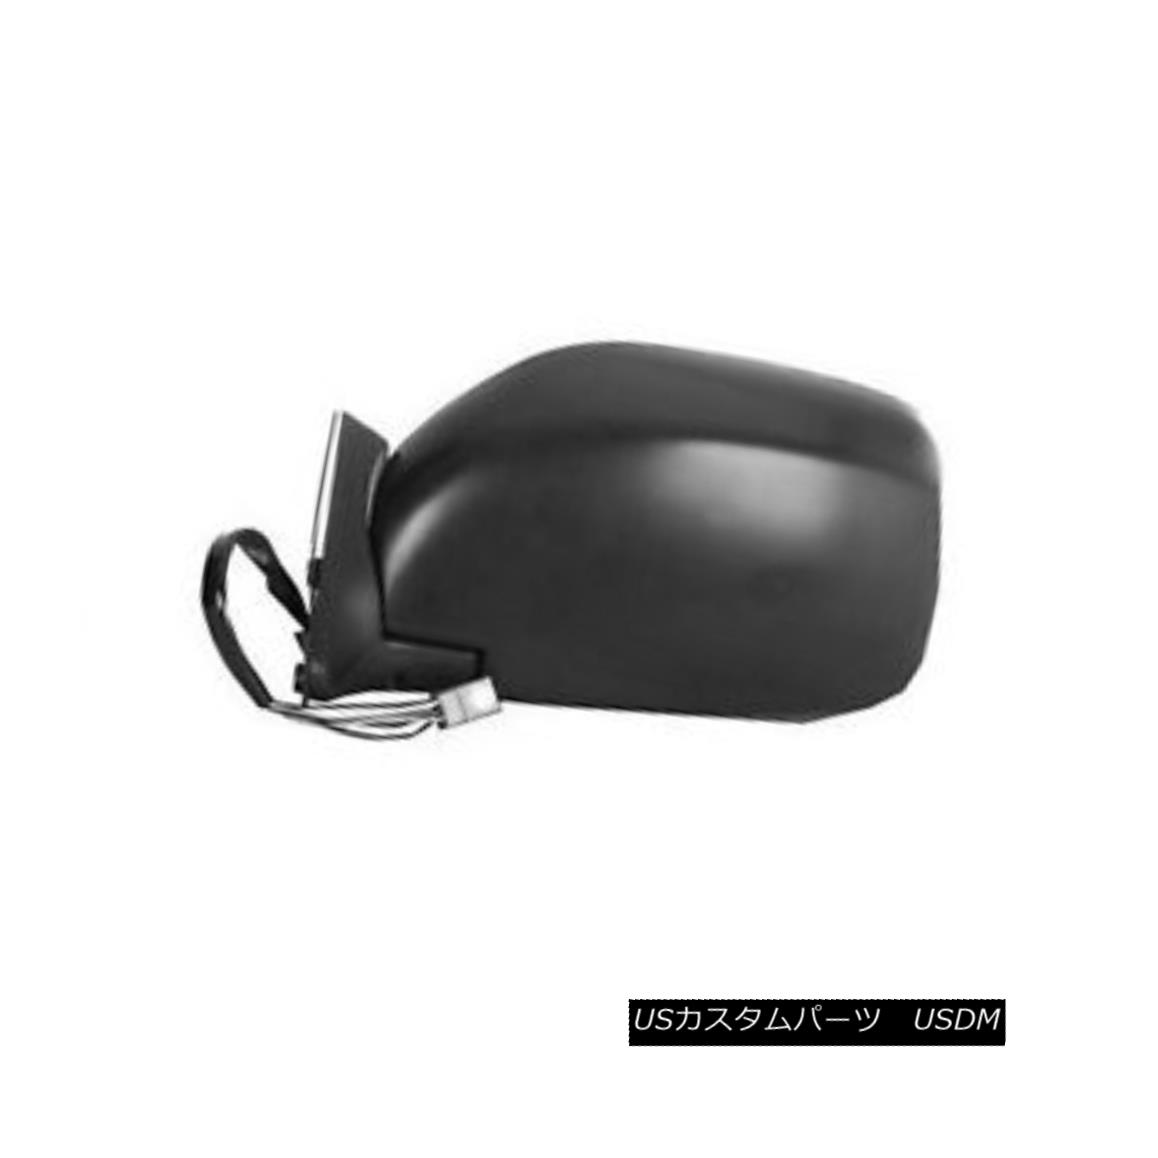 グリル Replacement LH Door Mirror 1997-2001 Jeep Cherokee NEW 128-03073AL 交換用LHドアミラー1997-2001ジープチェロキーNEW 128-03073AL